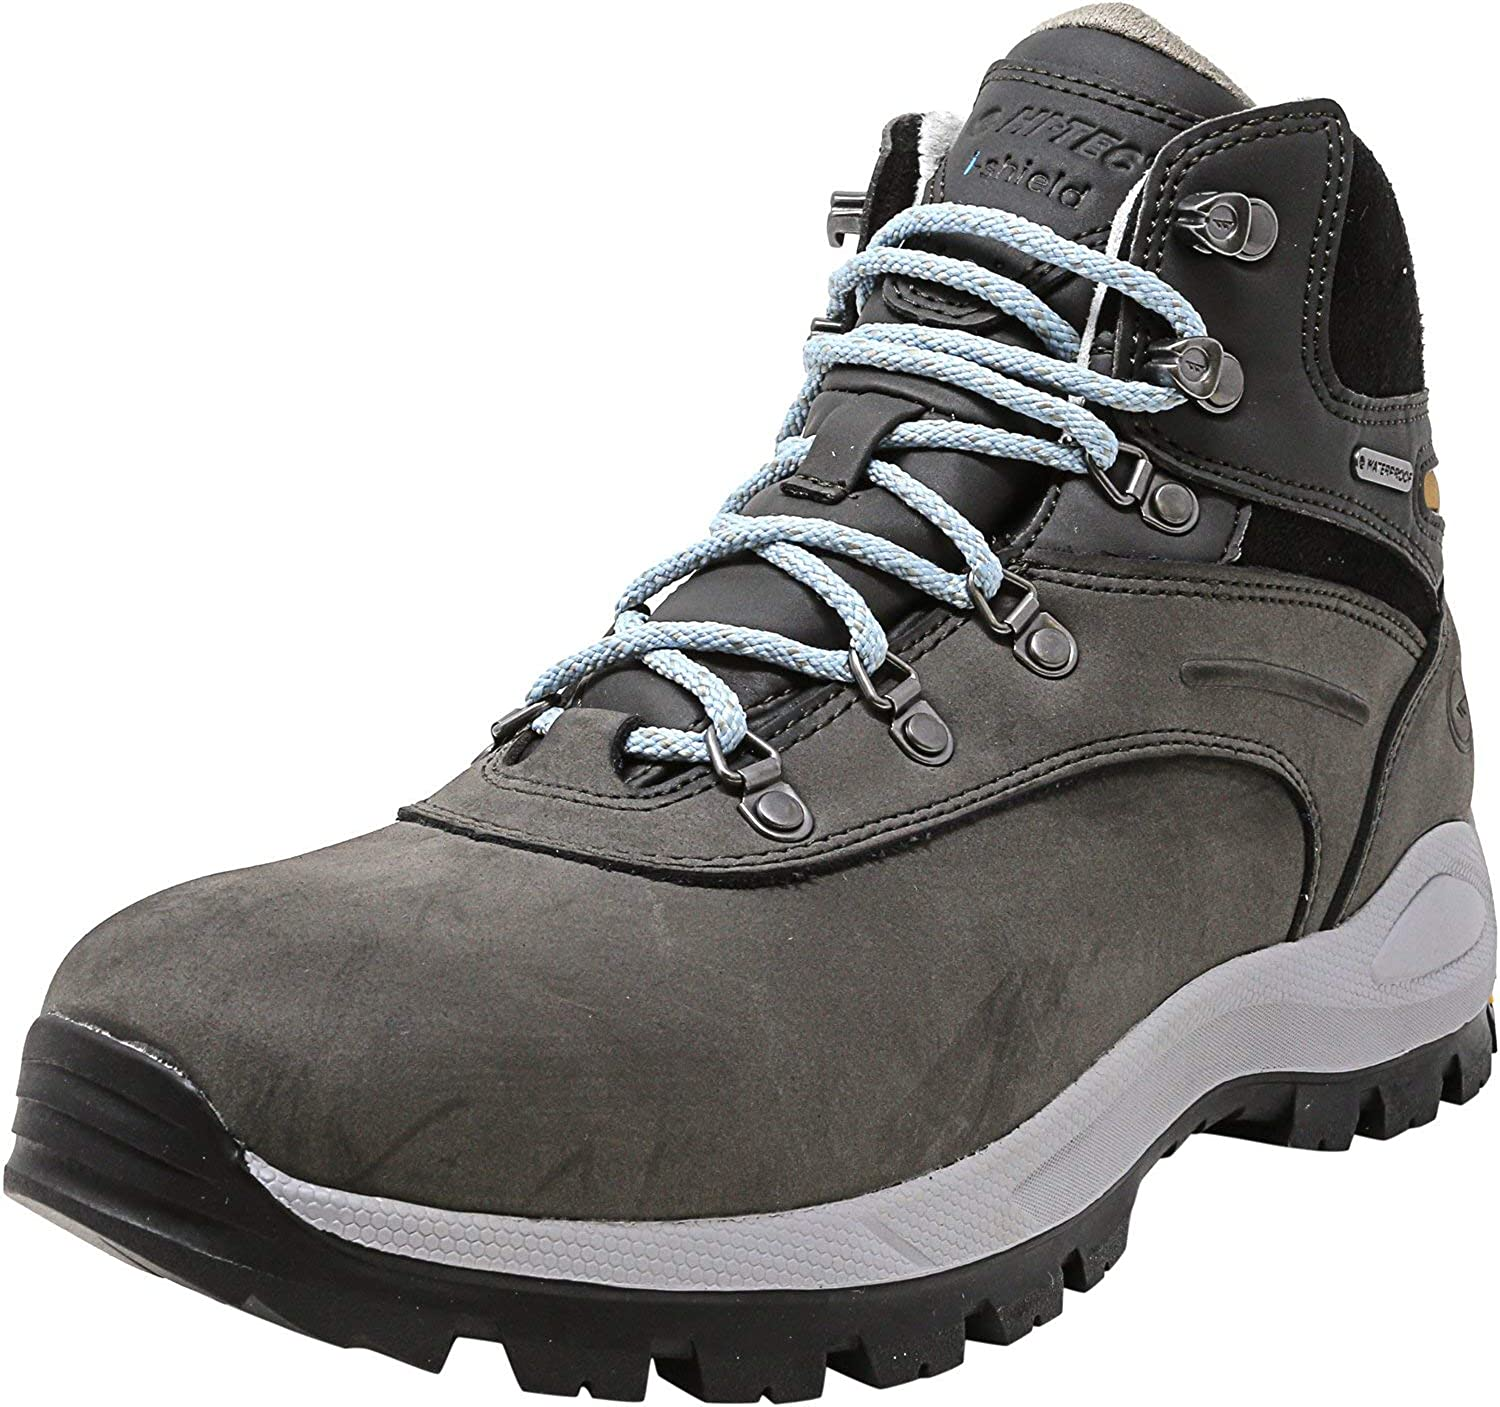 High-Top Leather Hiking Boot - 8.5M